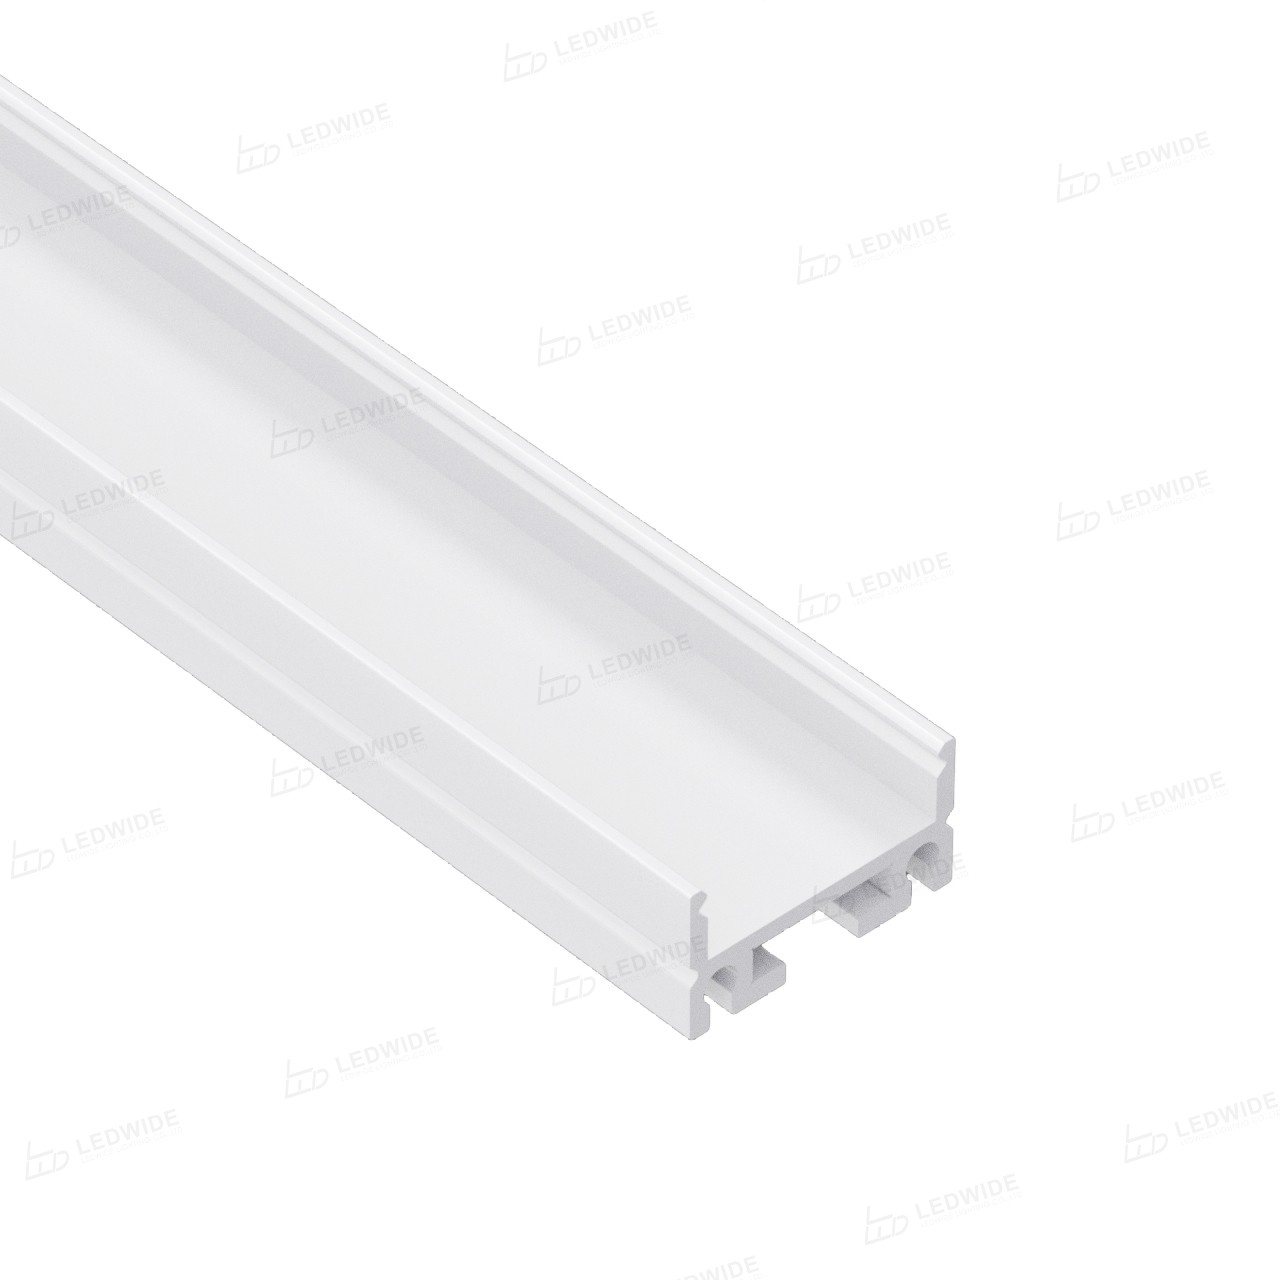 AT5 Suspended square led profile 19.5x19.2mm Manufacturers, AT5 Suspended square led profile 19.5x19.2mm Factory, Supply AT5 Suspended square led profile 19.5x19.2mm